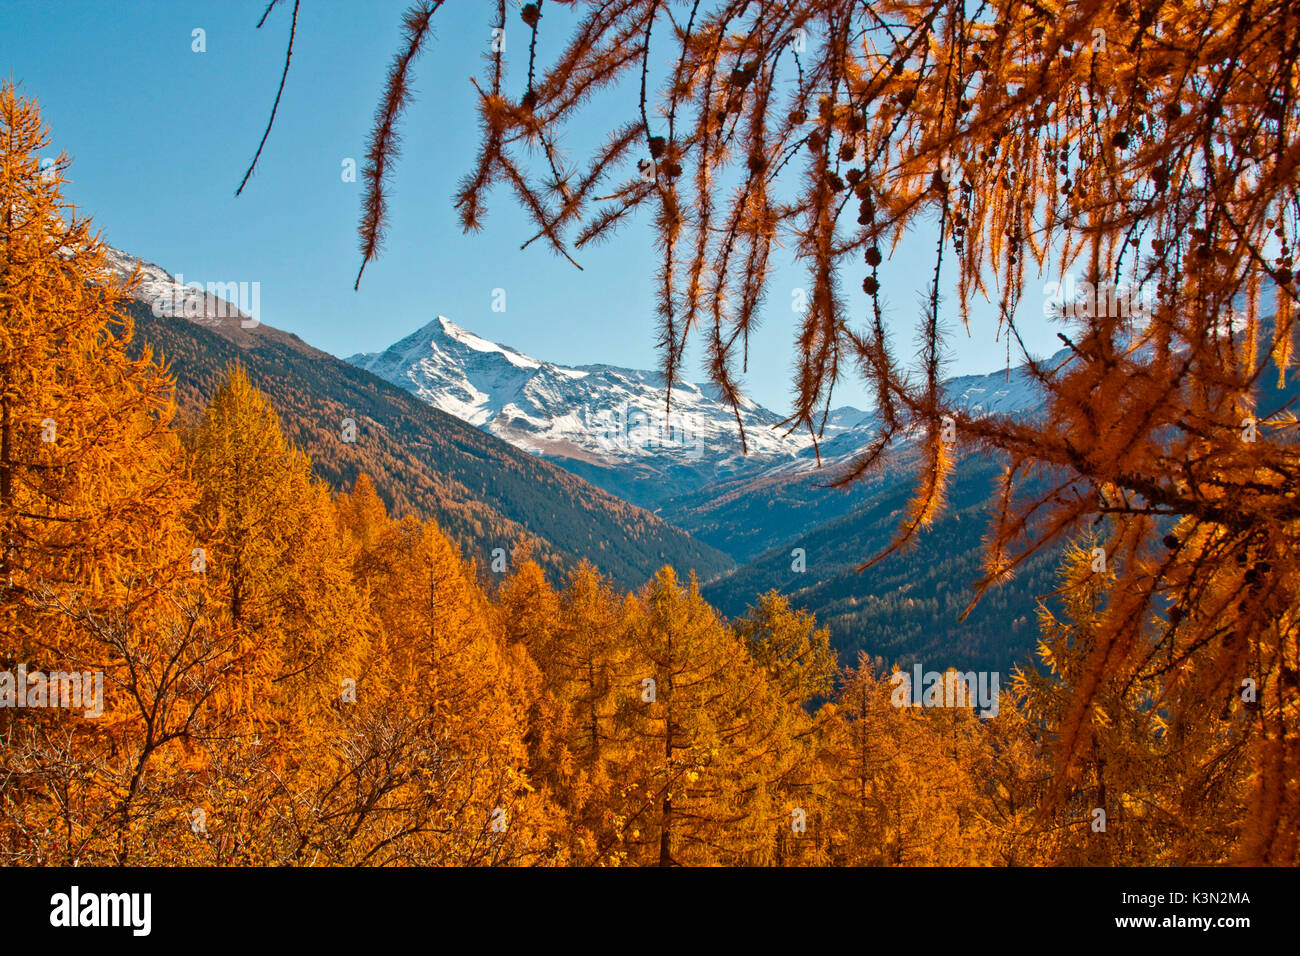 Tresero peak between Ables larch's branches in autumn, Valtellina, Lombardy - Stock Image